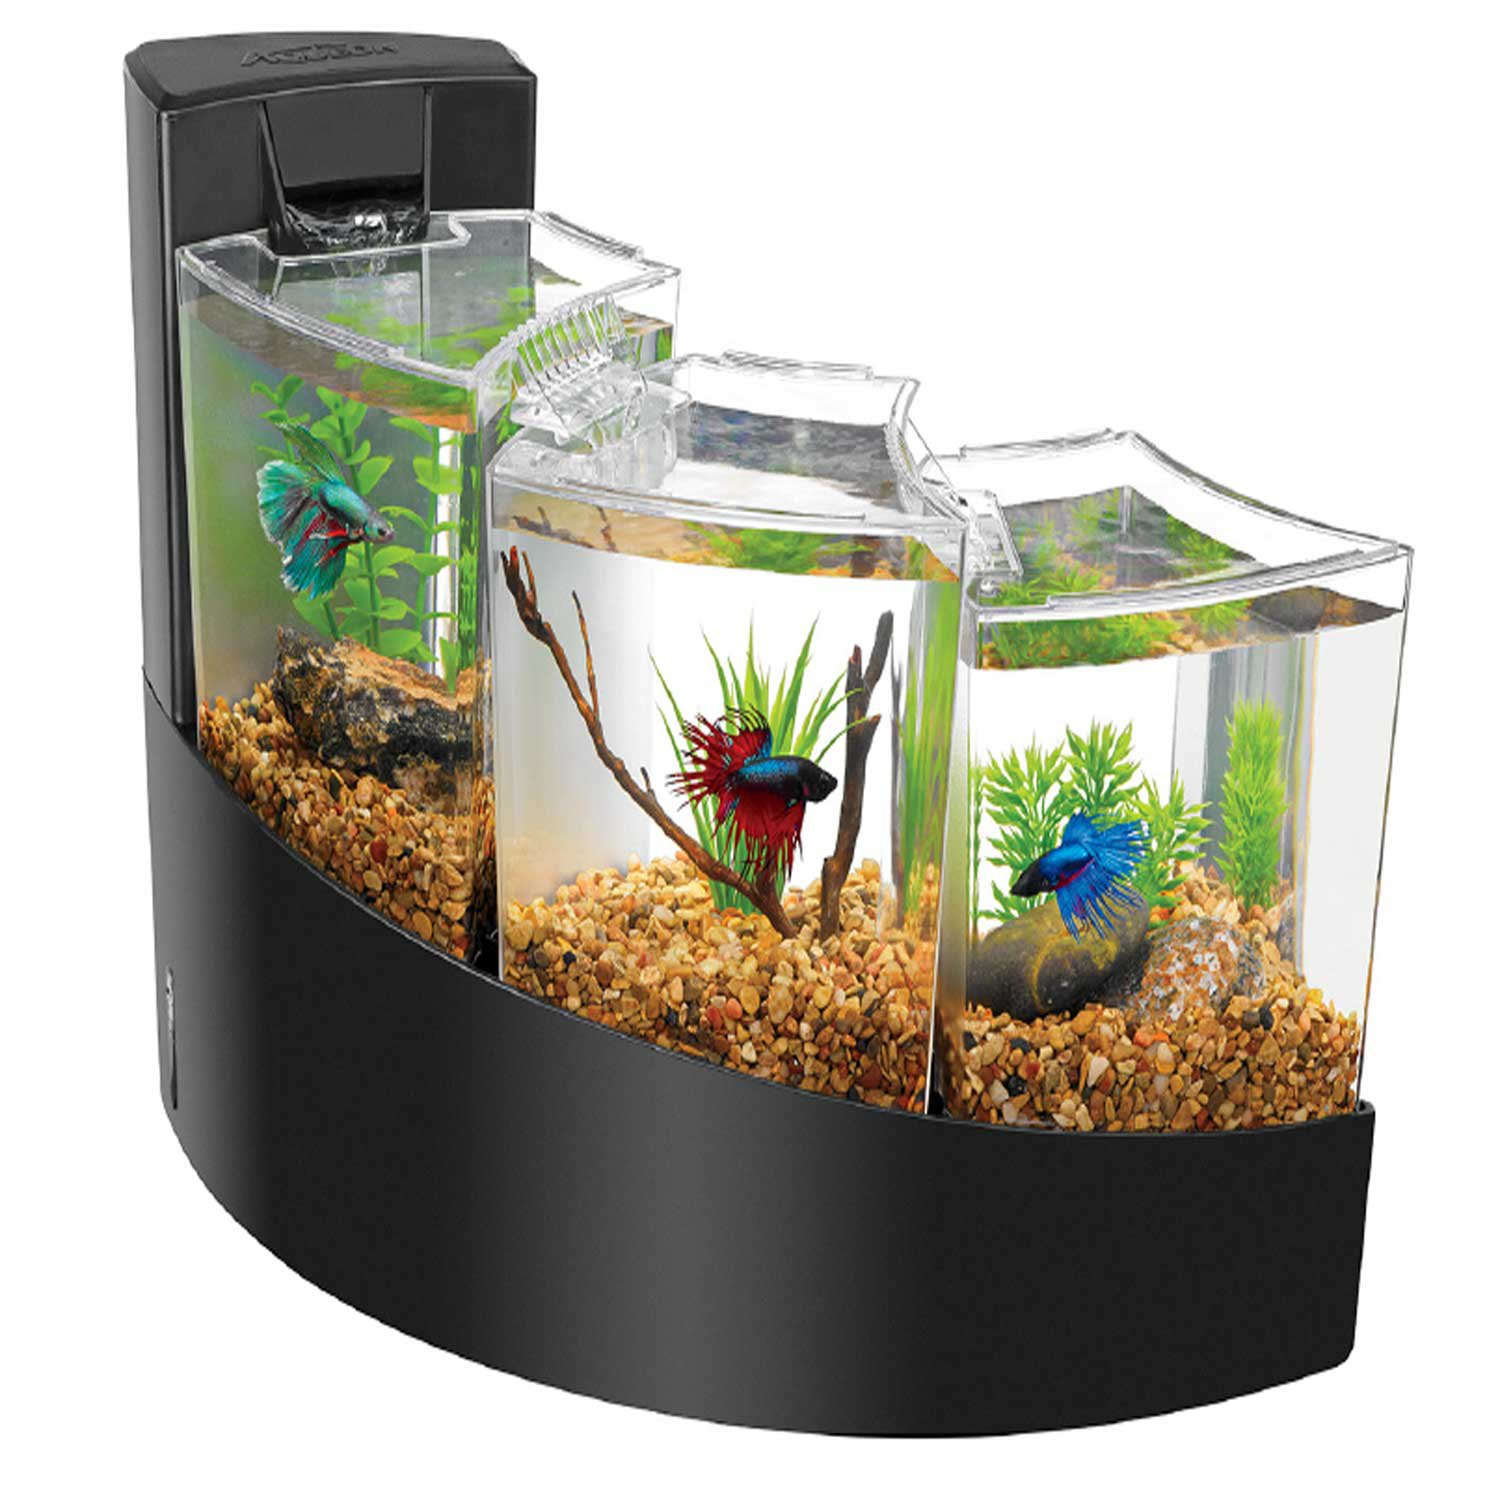 Fish aquarium shops in nagpur wholesalers dealers on for Black light for fish tank